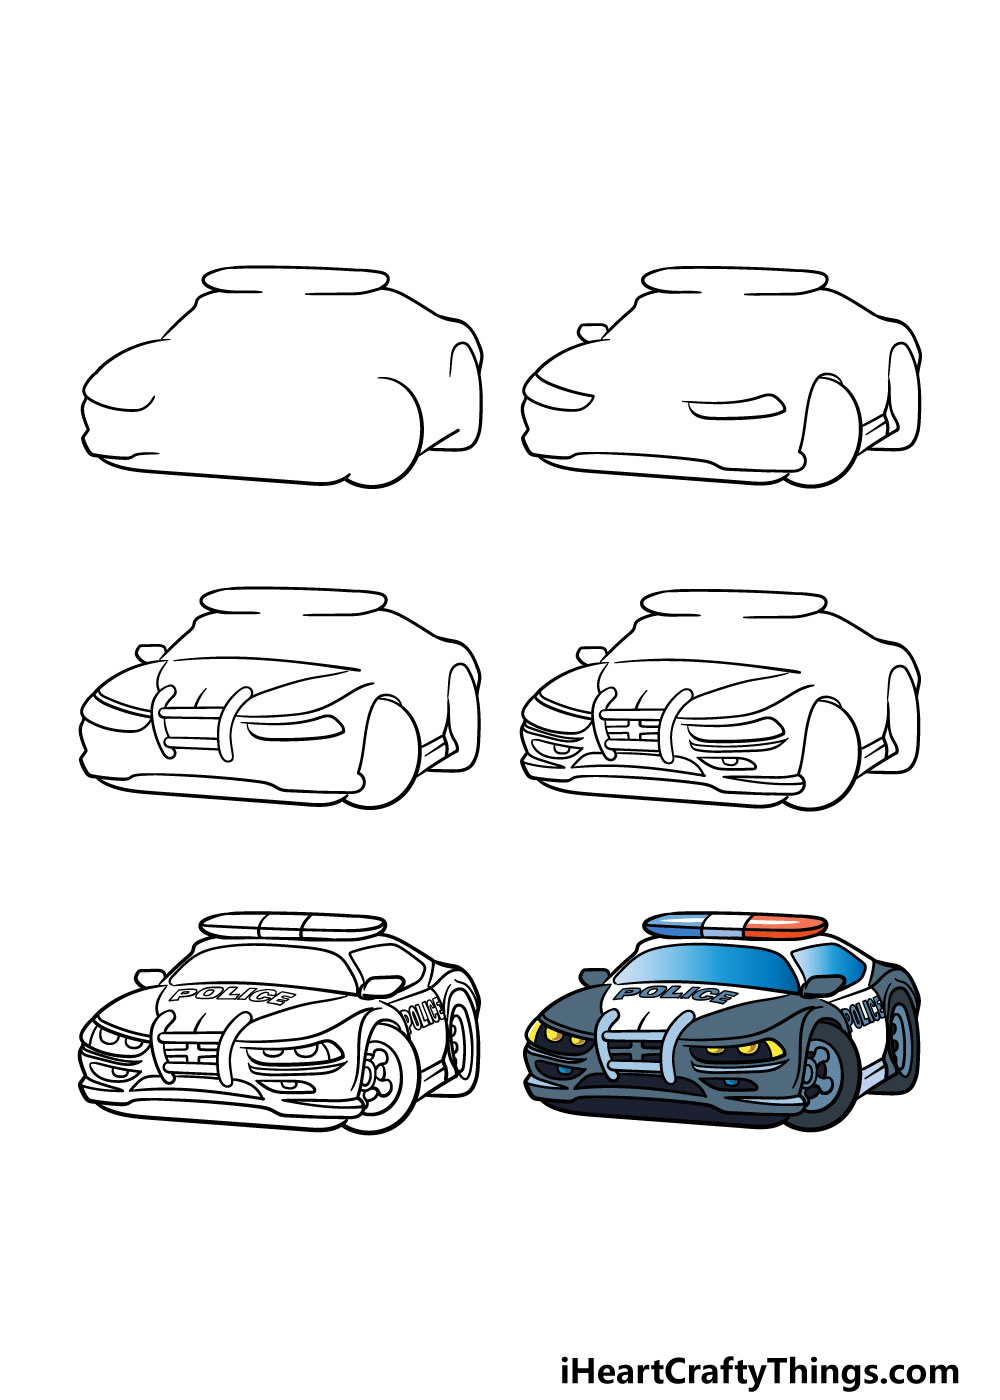 how to draw a police car in 6 steps